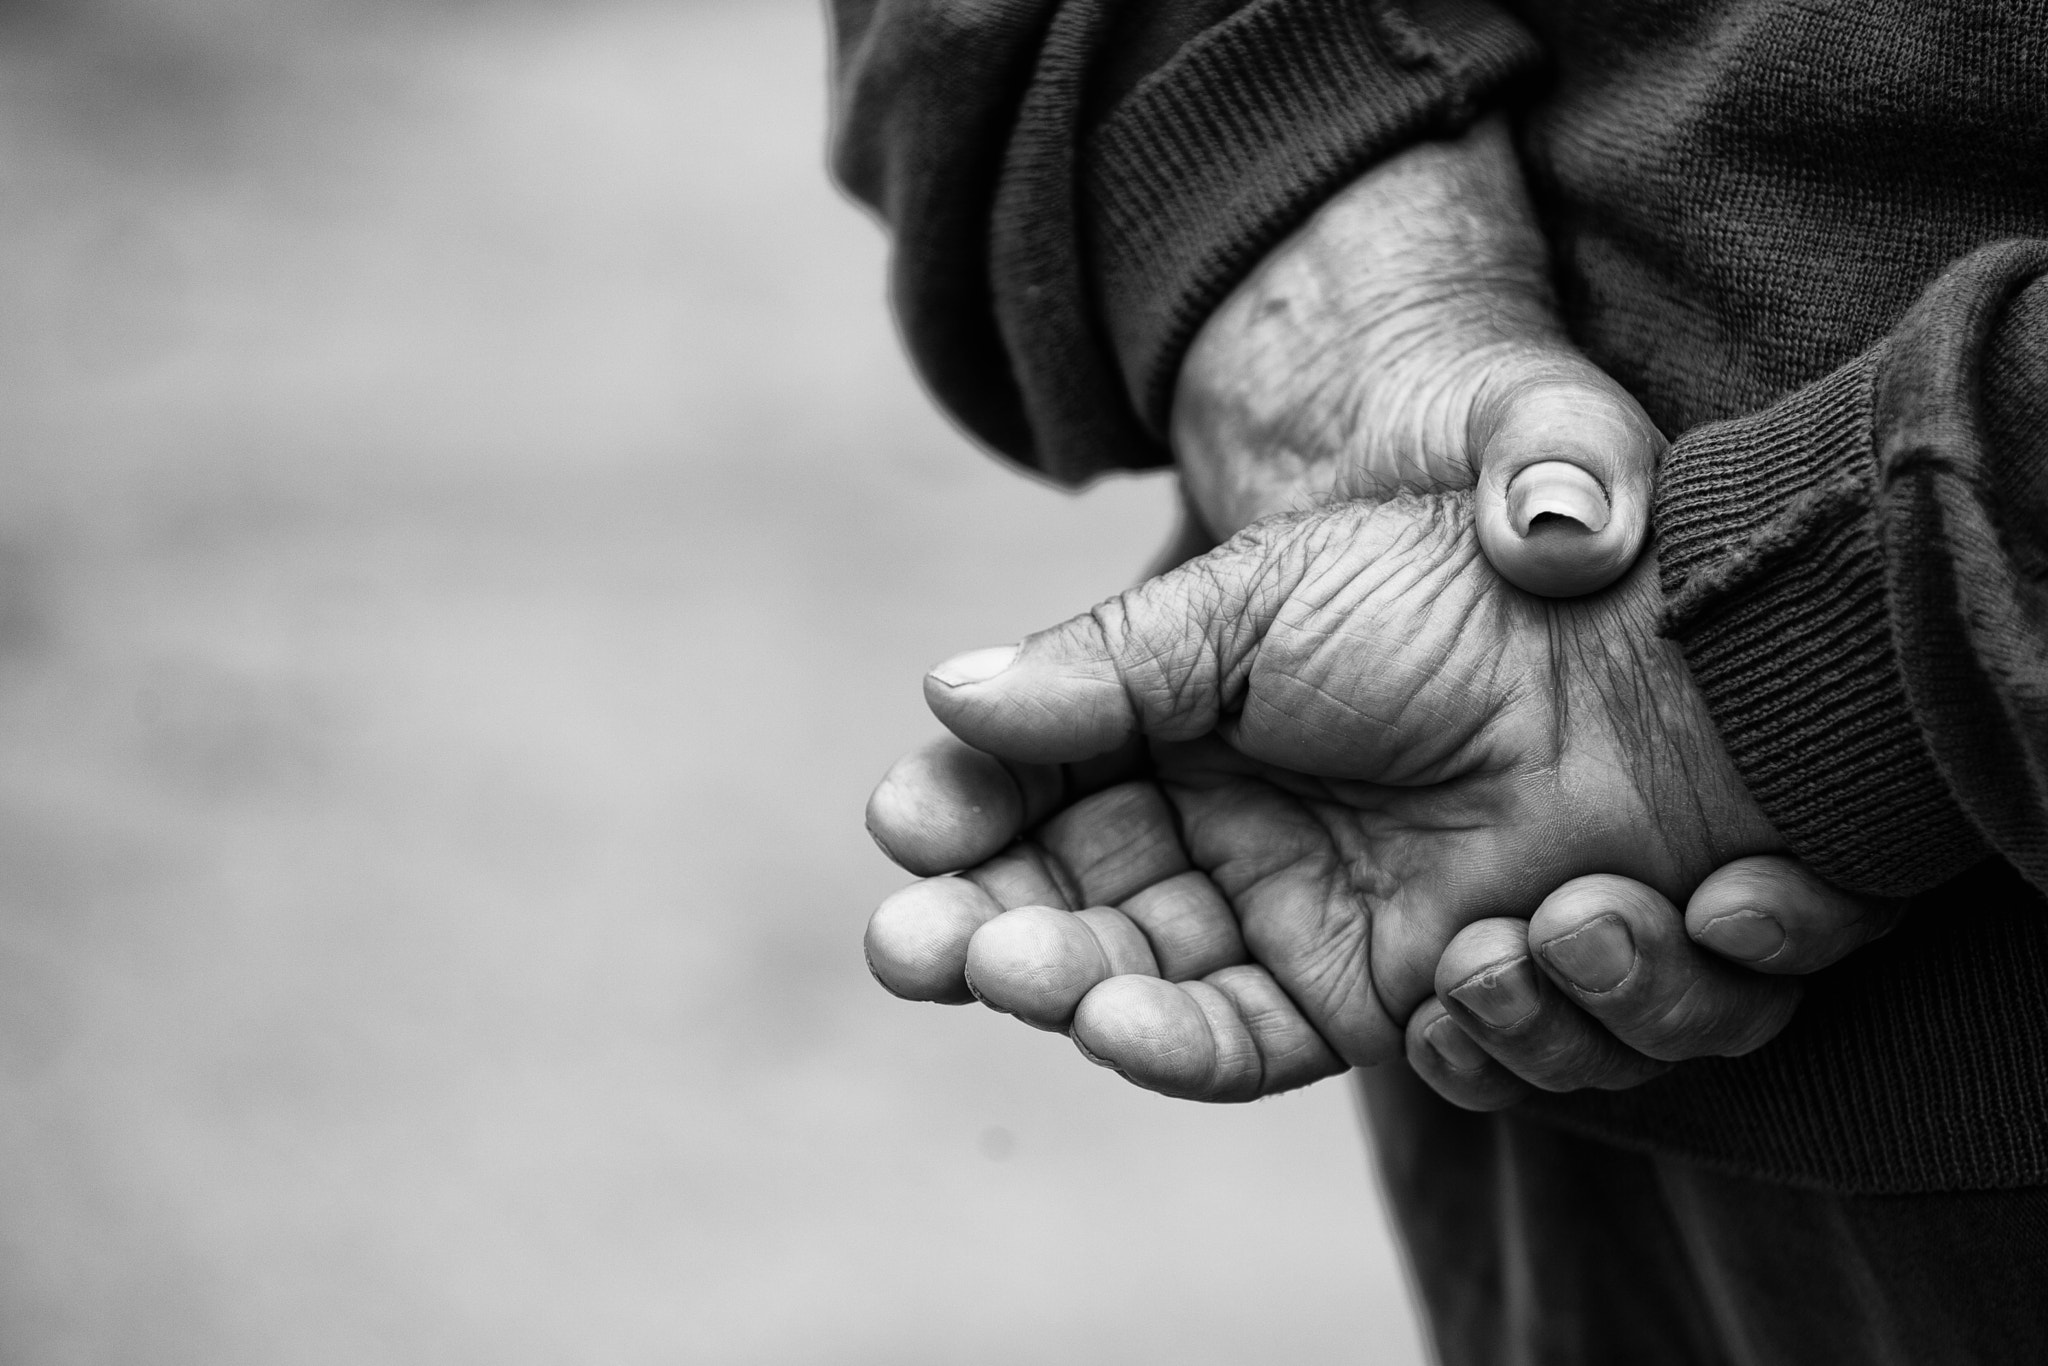 Photograph Farmer's Hands by Andrea Izzotti on 500px